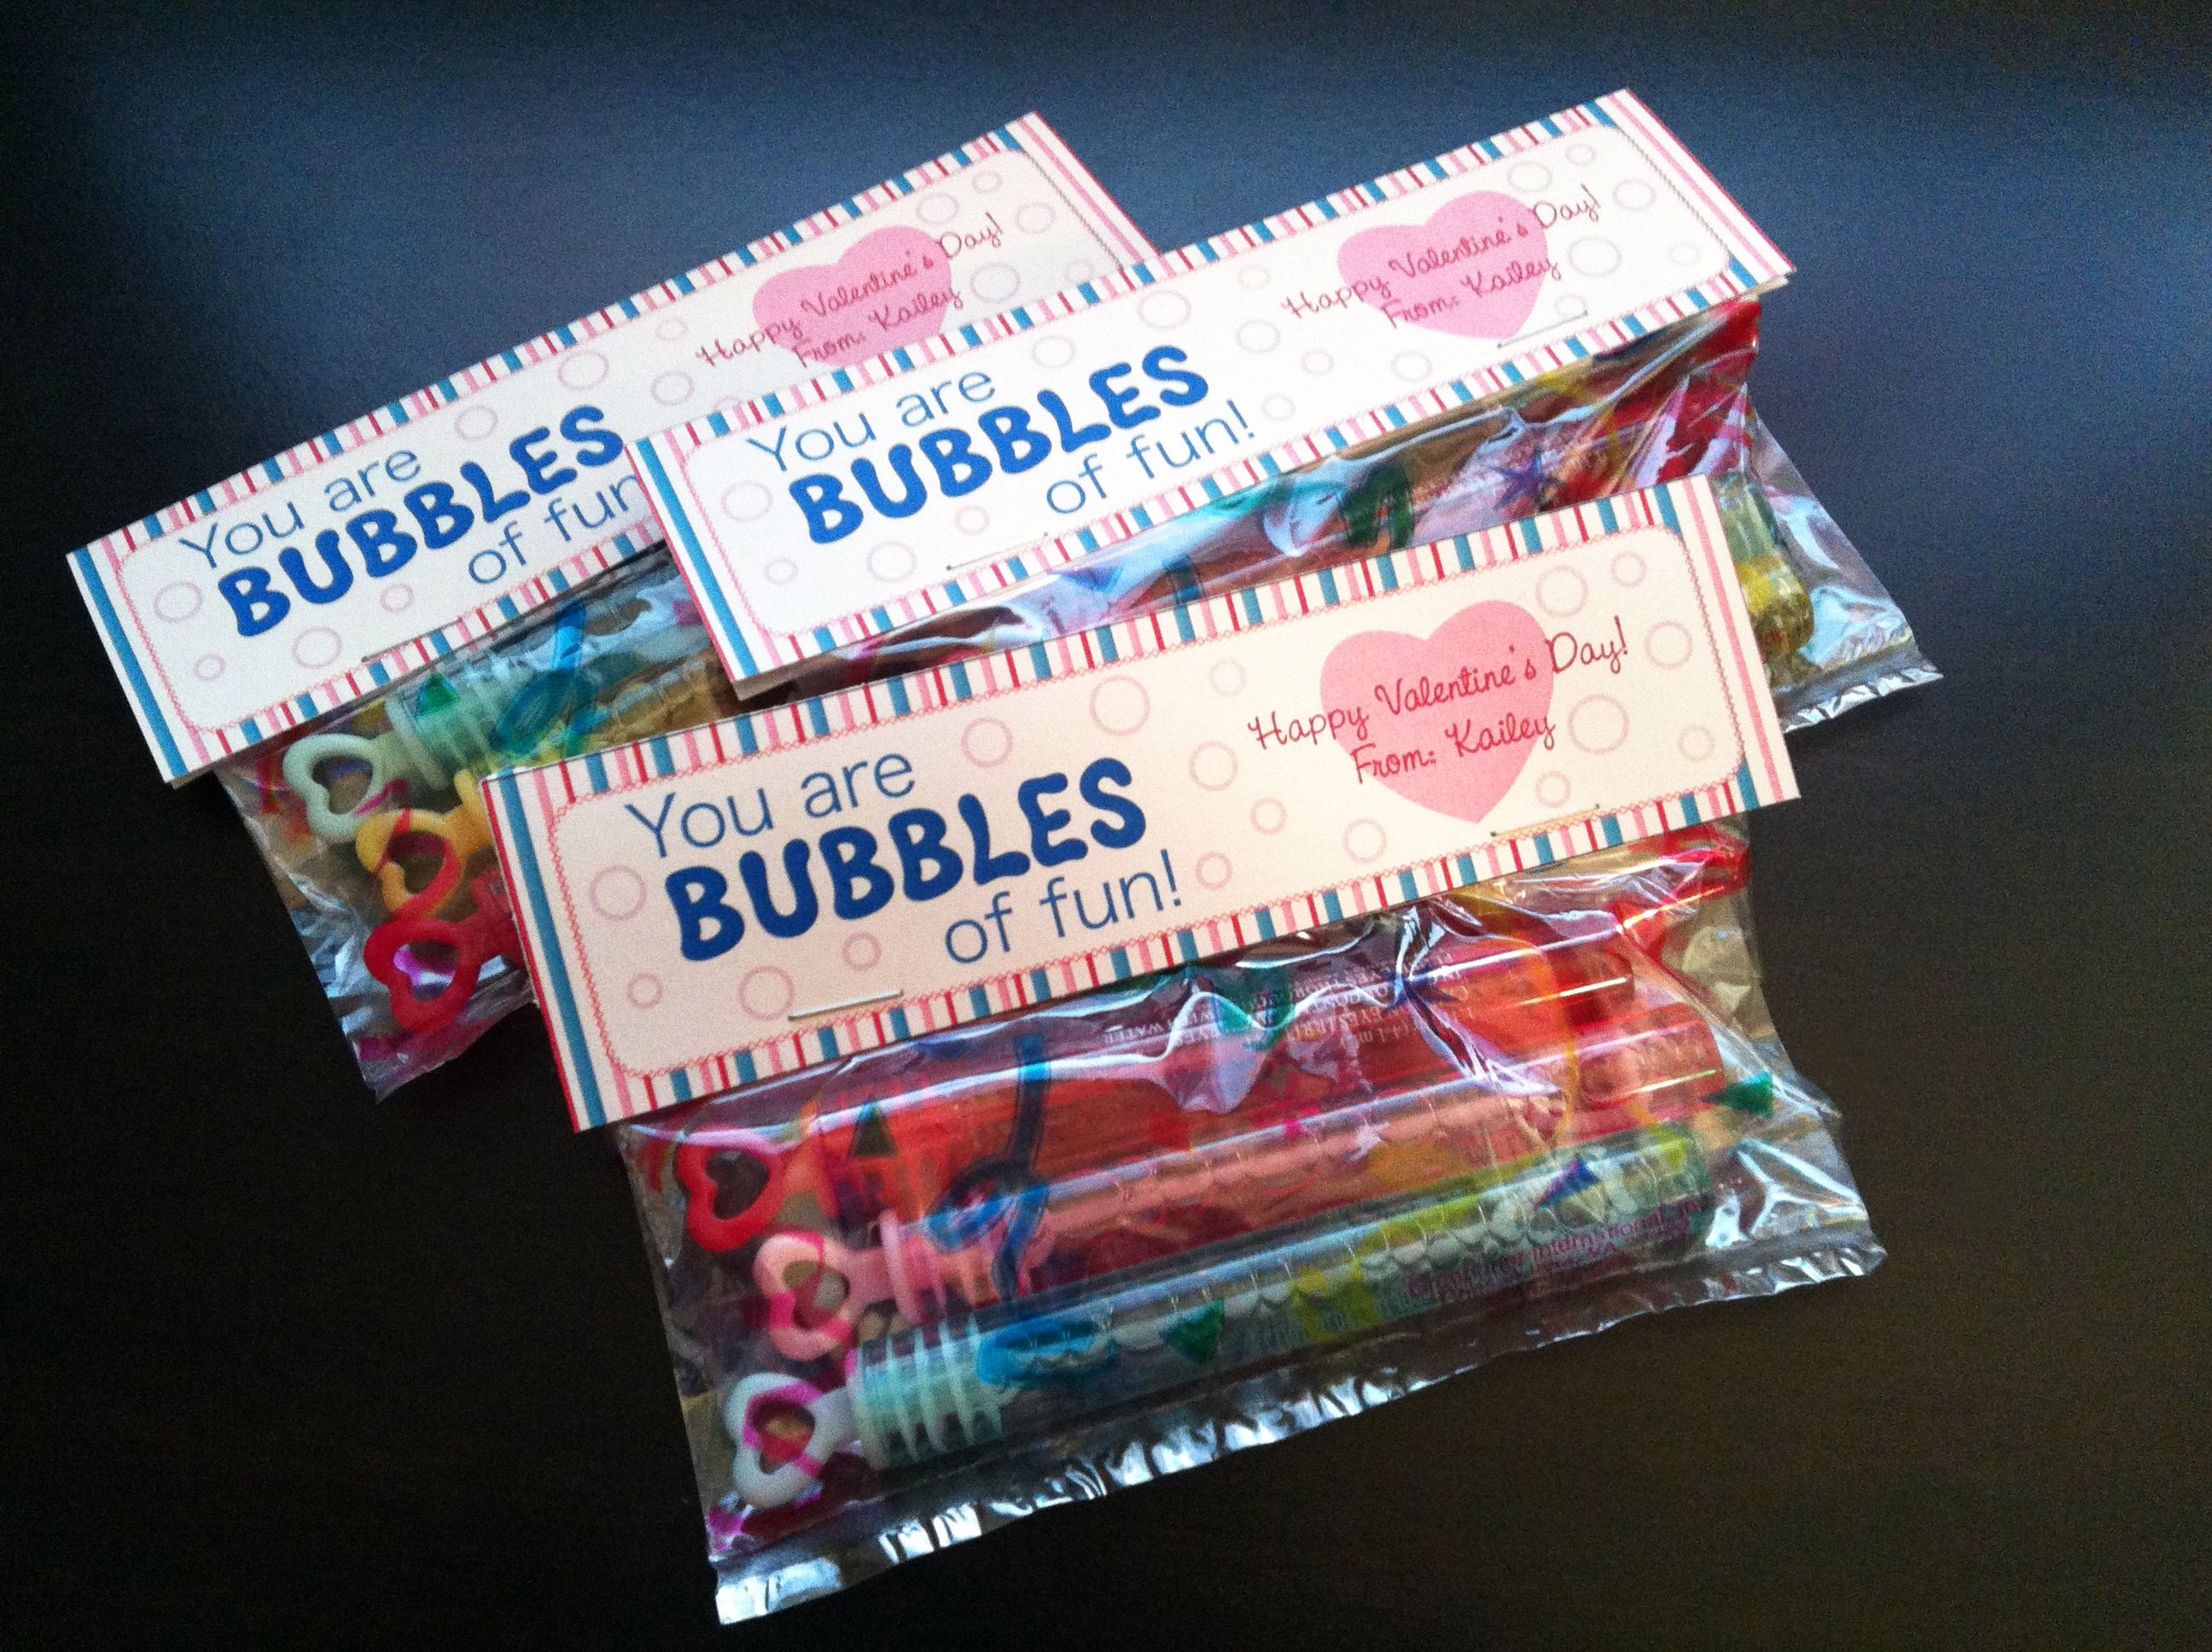 Kaileys valentines gift for her daycare buddiesn candy treat valentines gift for daycare buddiesn candy treat pinner designed a label and bought bubbles with little heart wands from target dollar tree treat negle Gallery